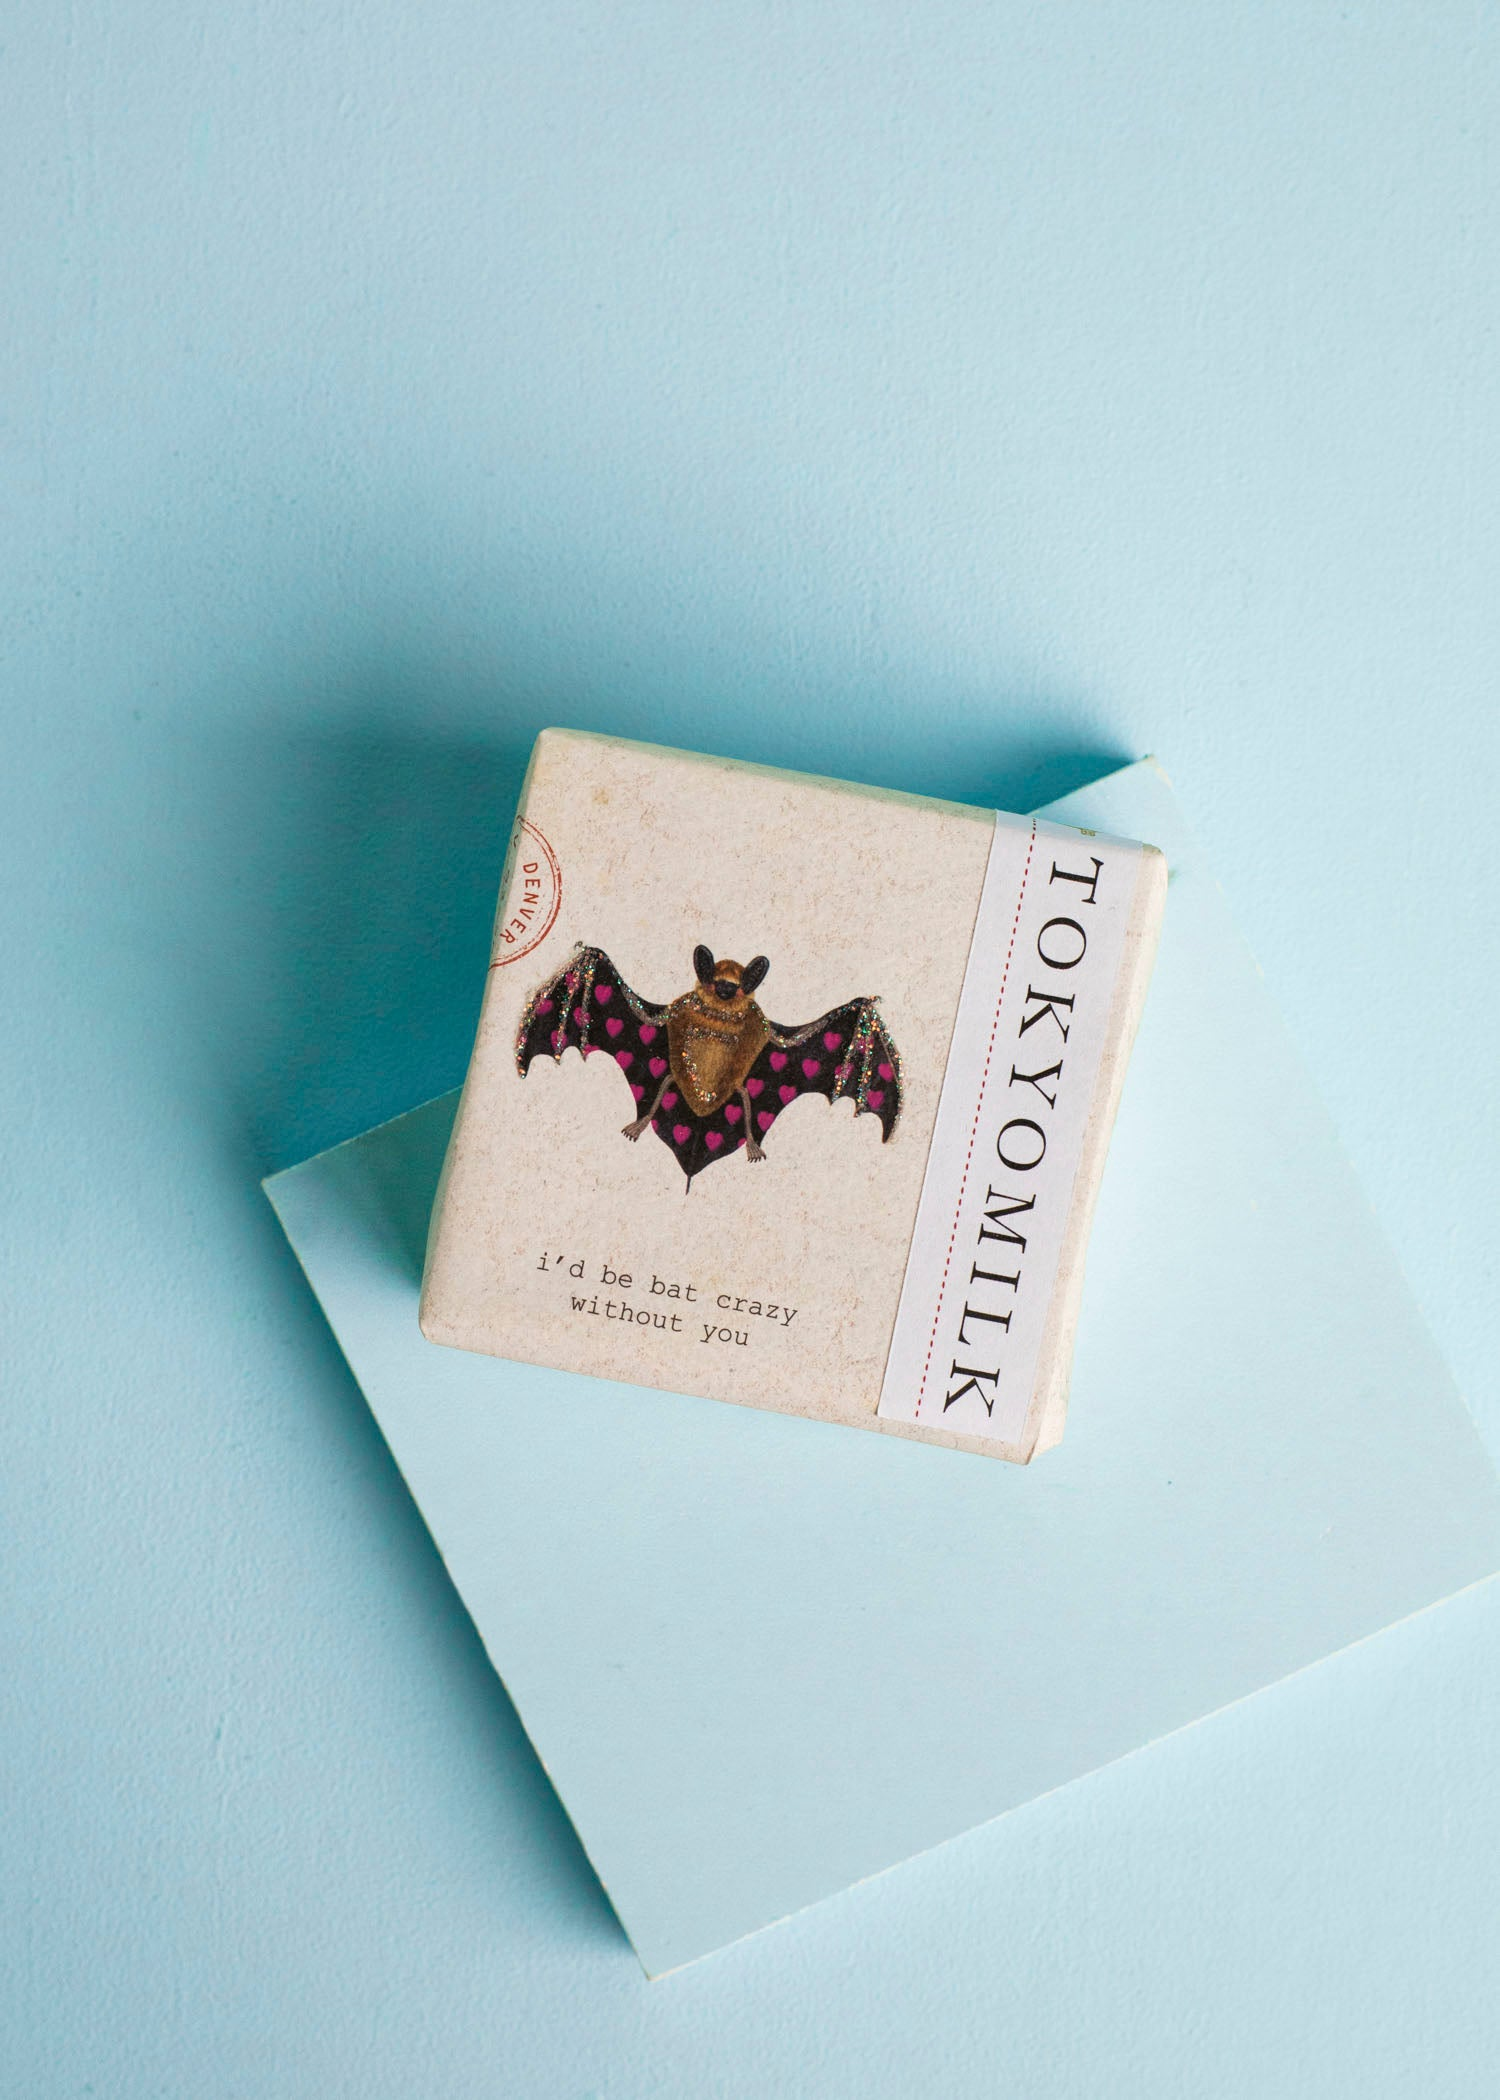 Bat Crazy Without You Finest Perfumed Soap